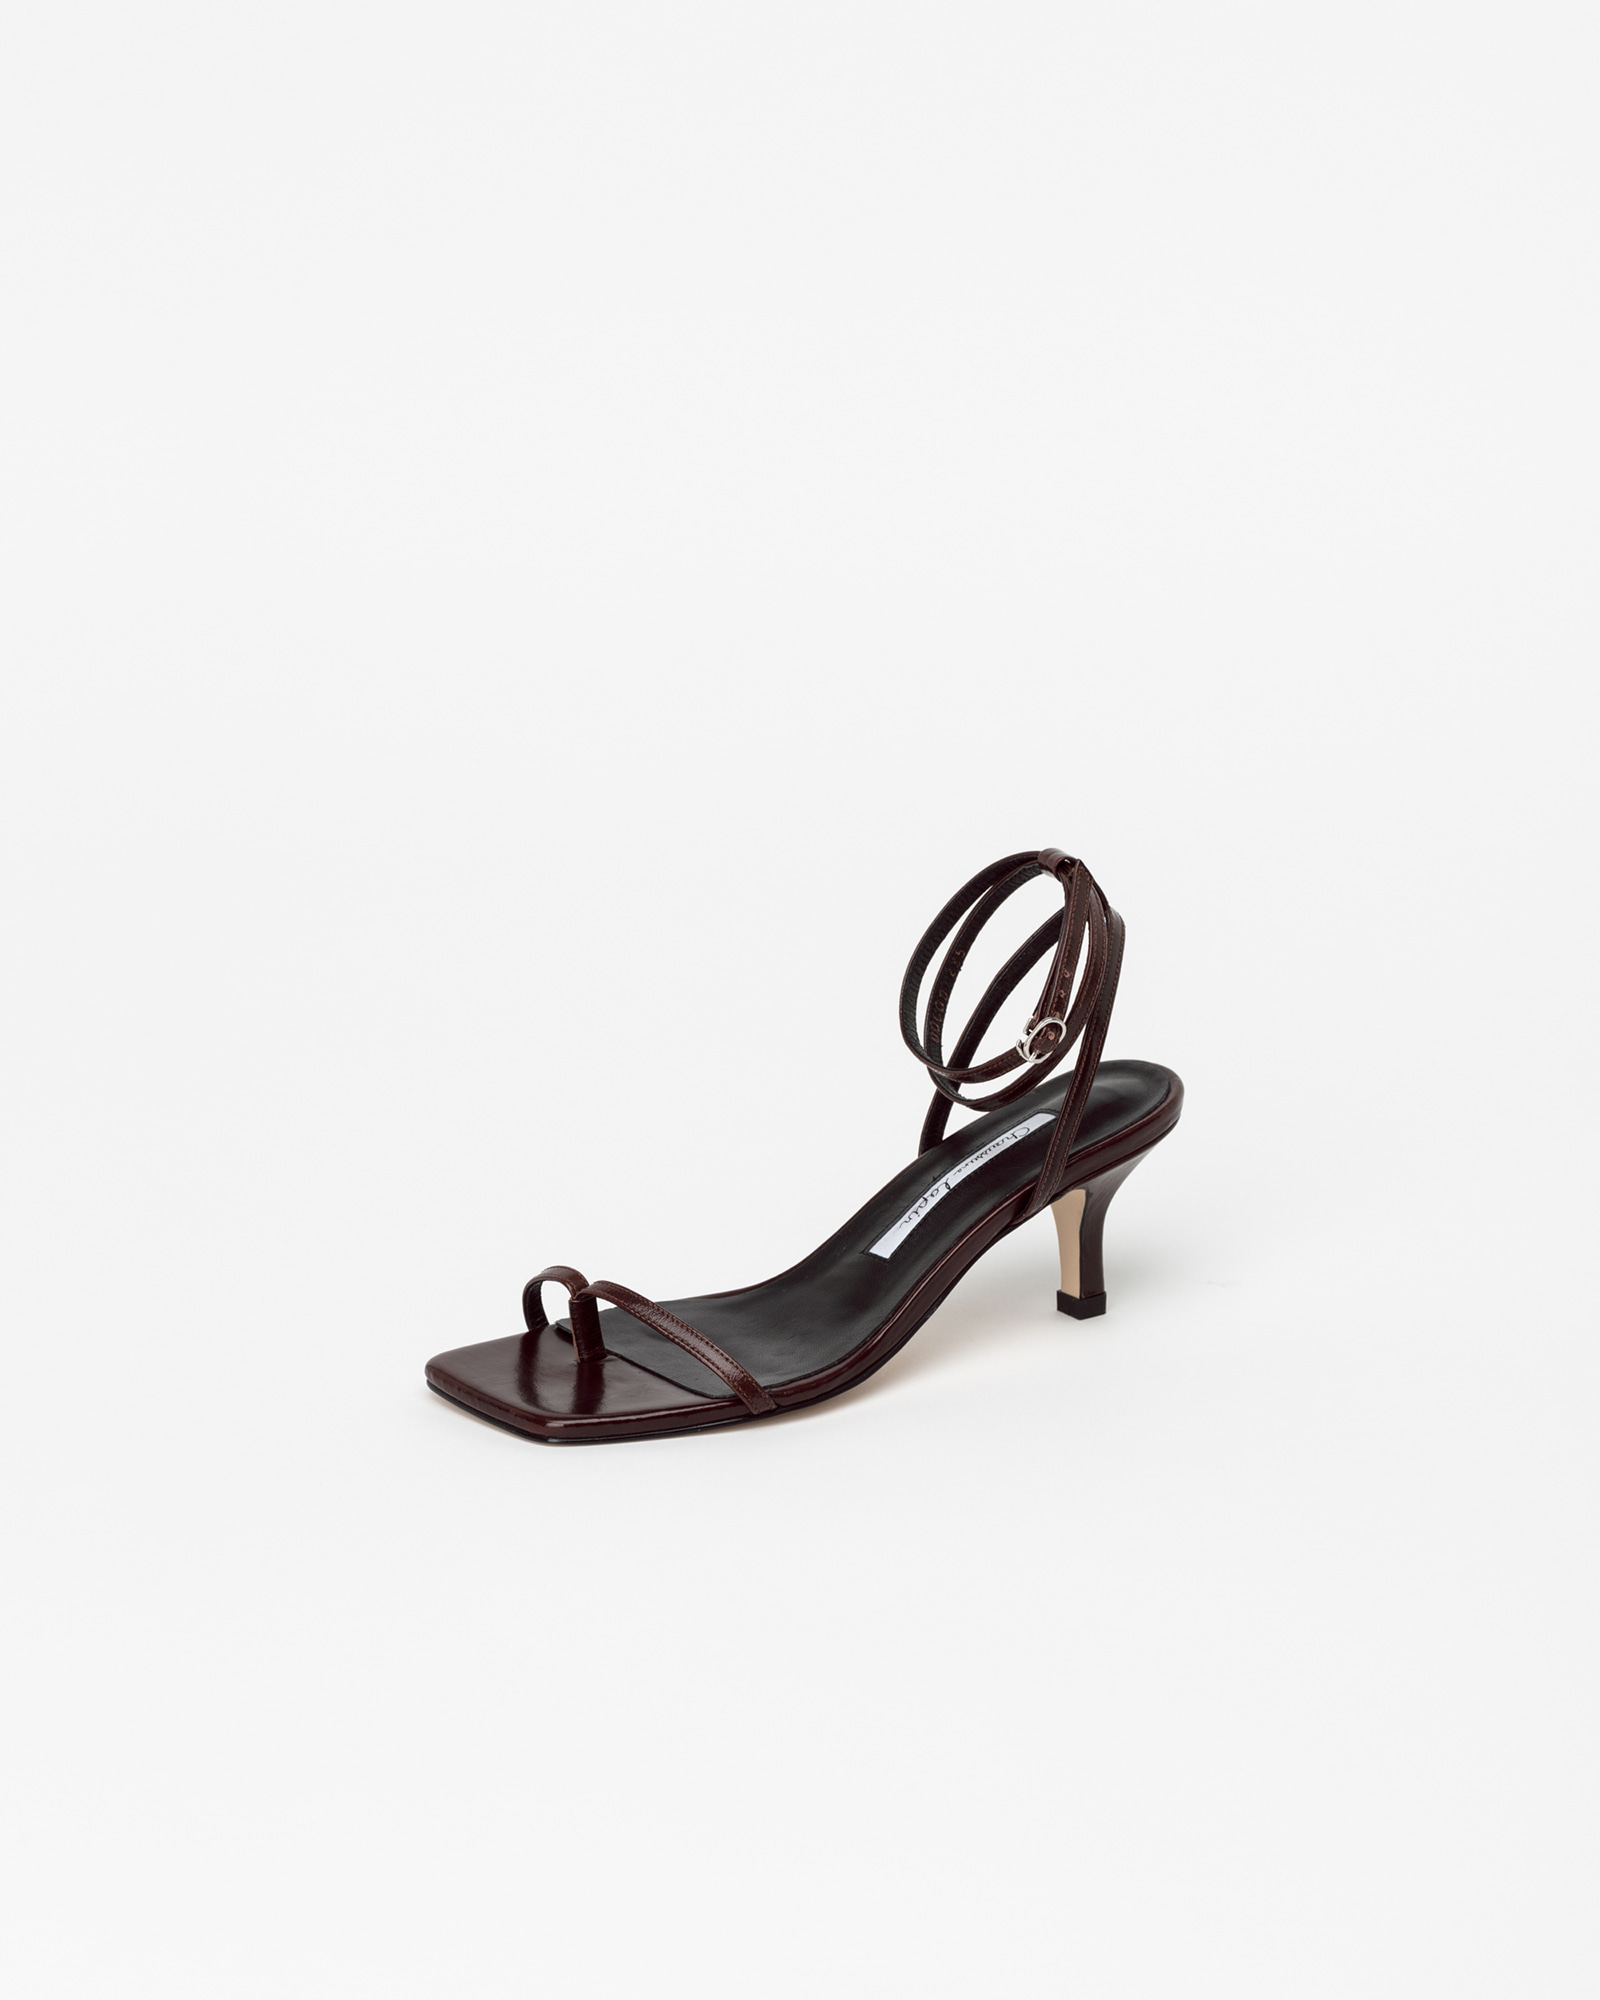 Evelaine Thong Strap Sandals in Textured Wine